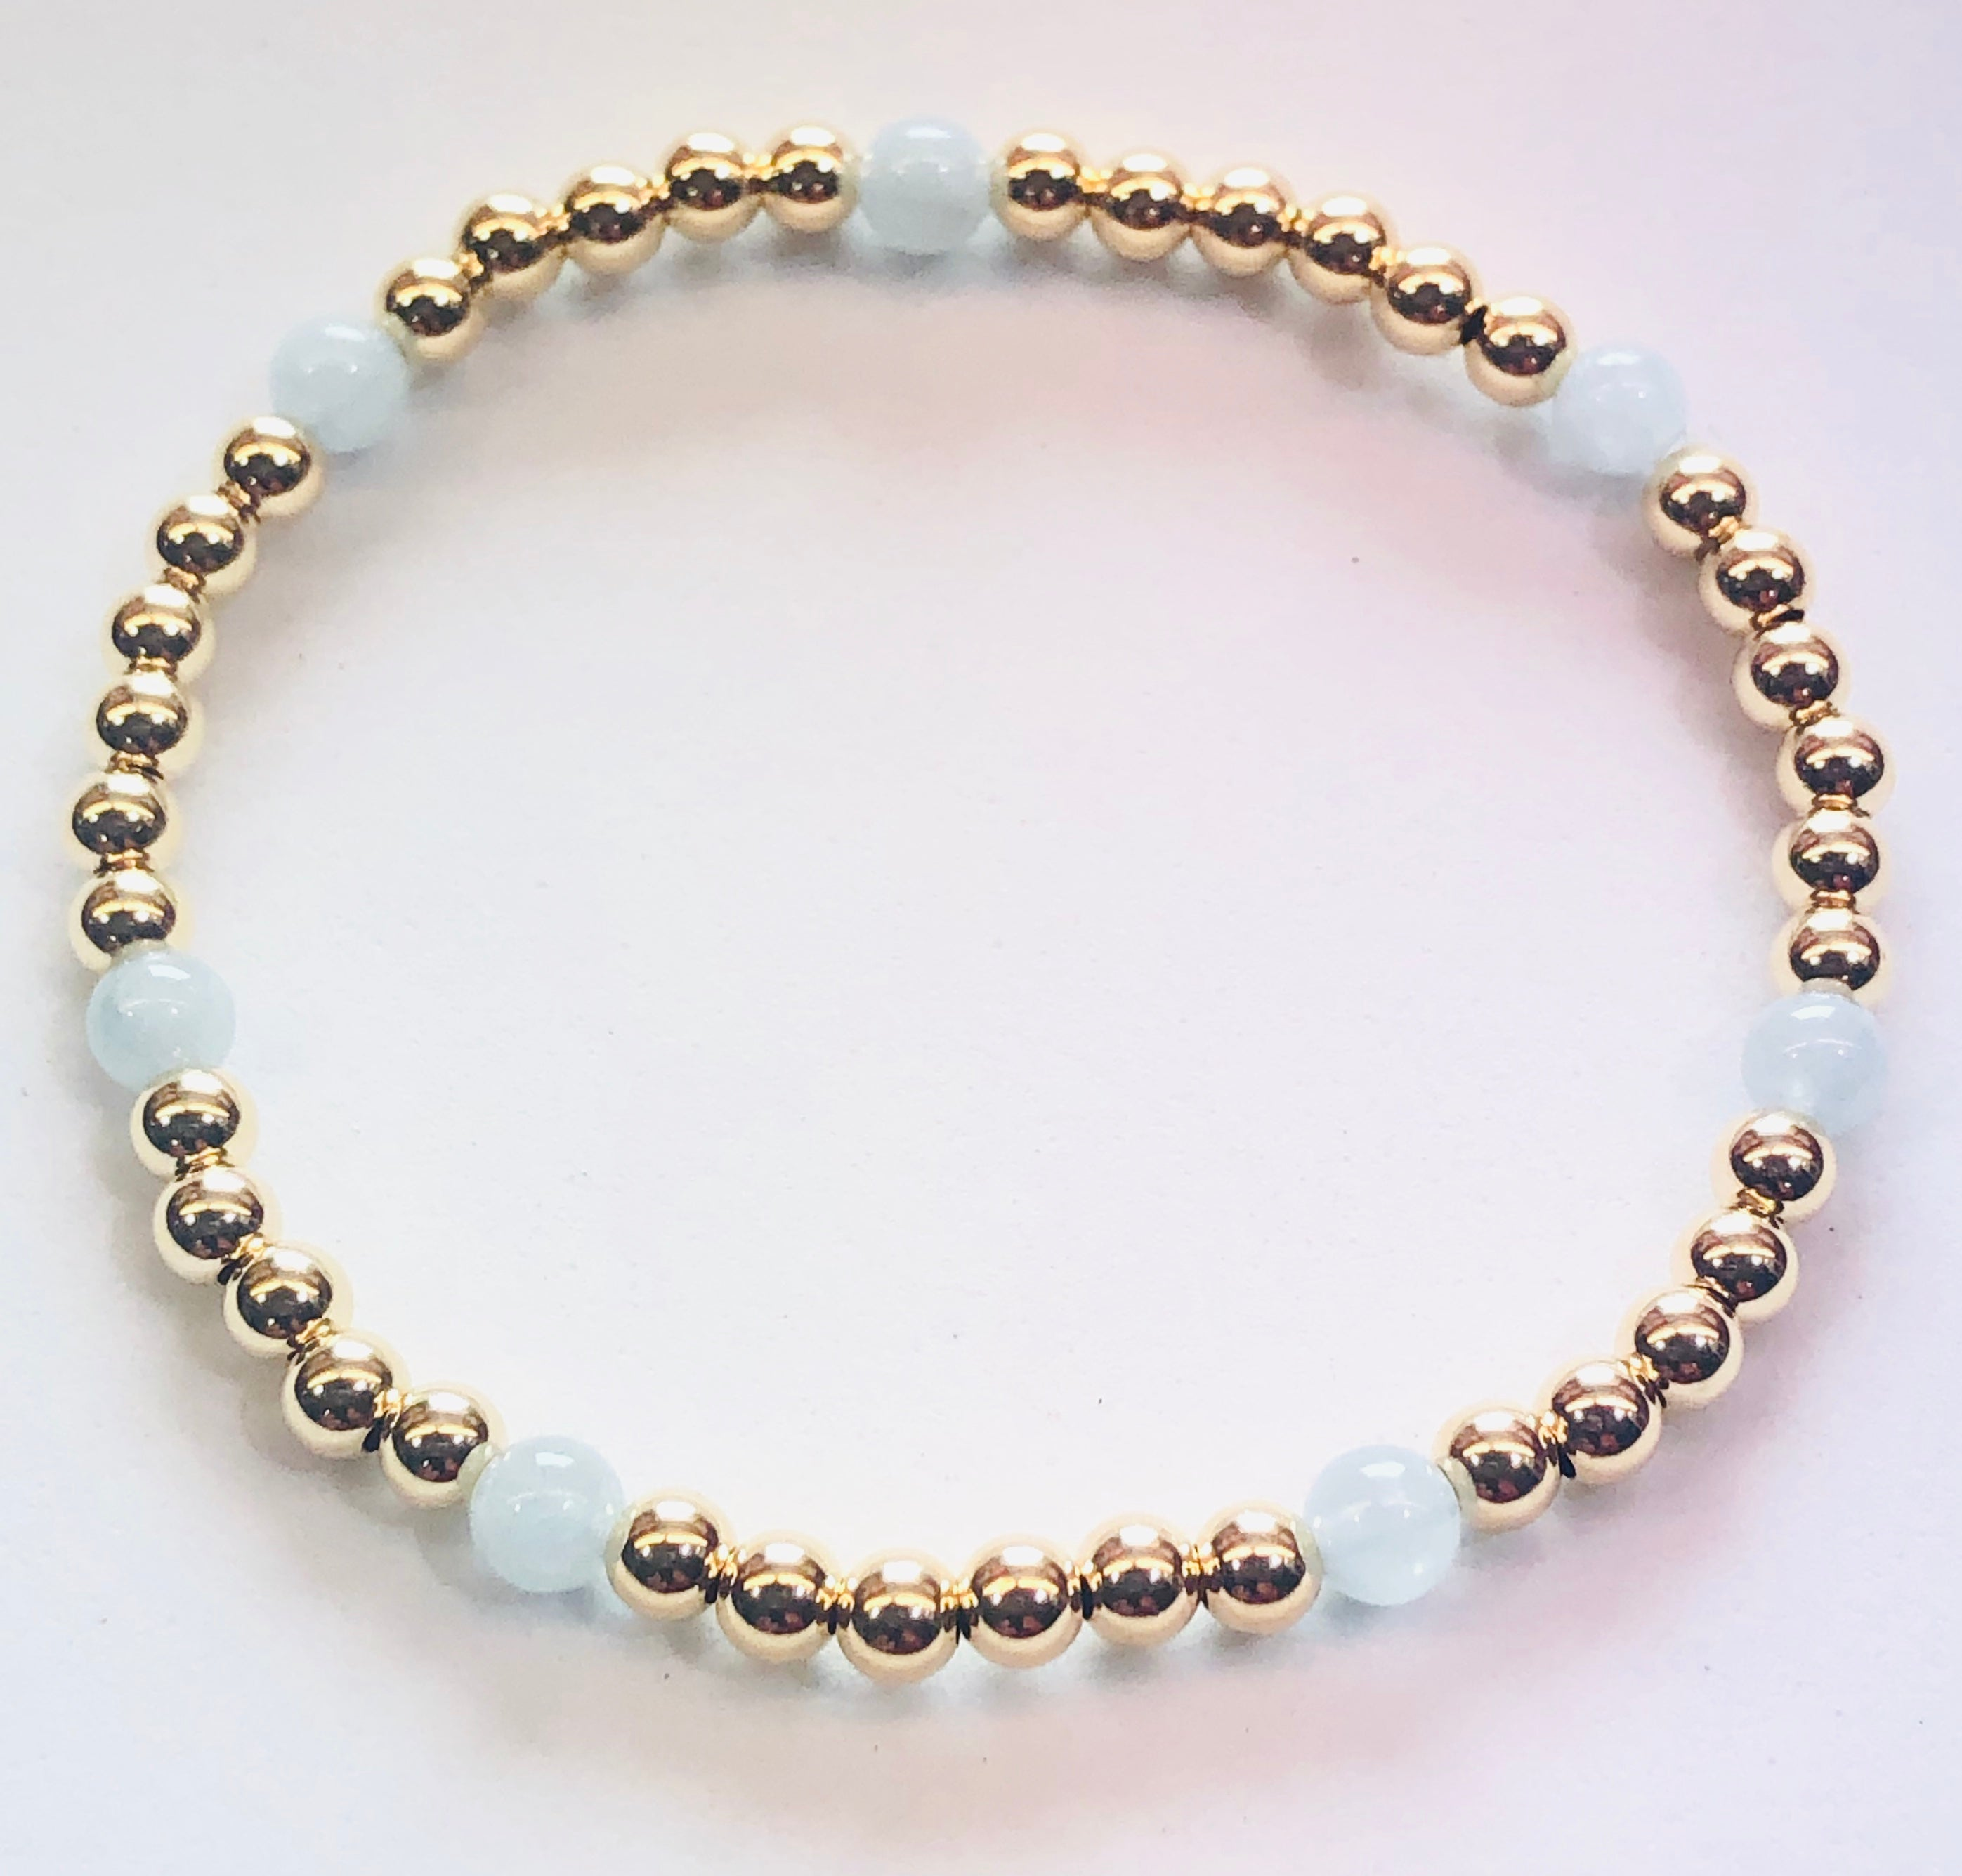 4mm 14kt Gold Filled Bead Bracelet with 4mm Aquamarine Beads